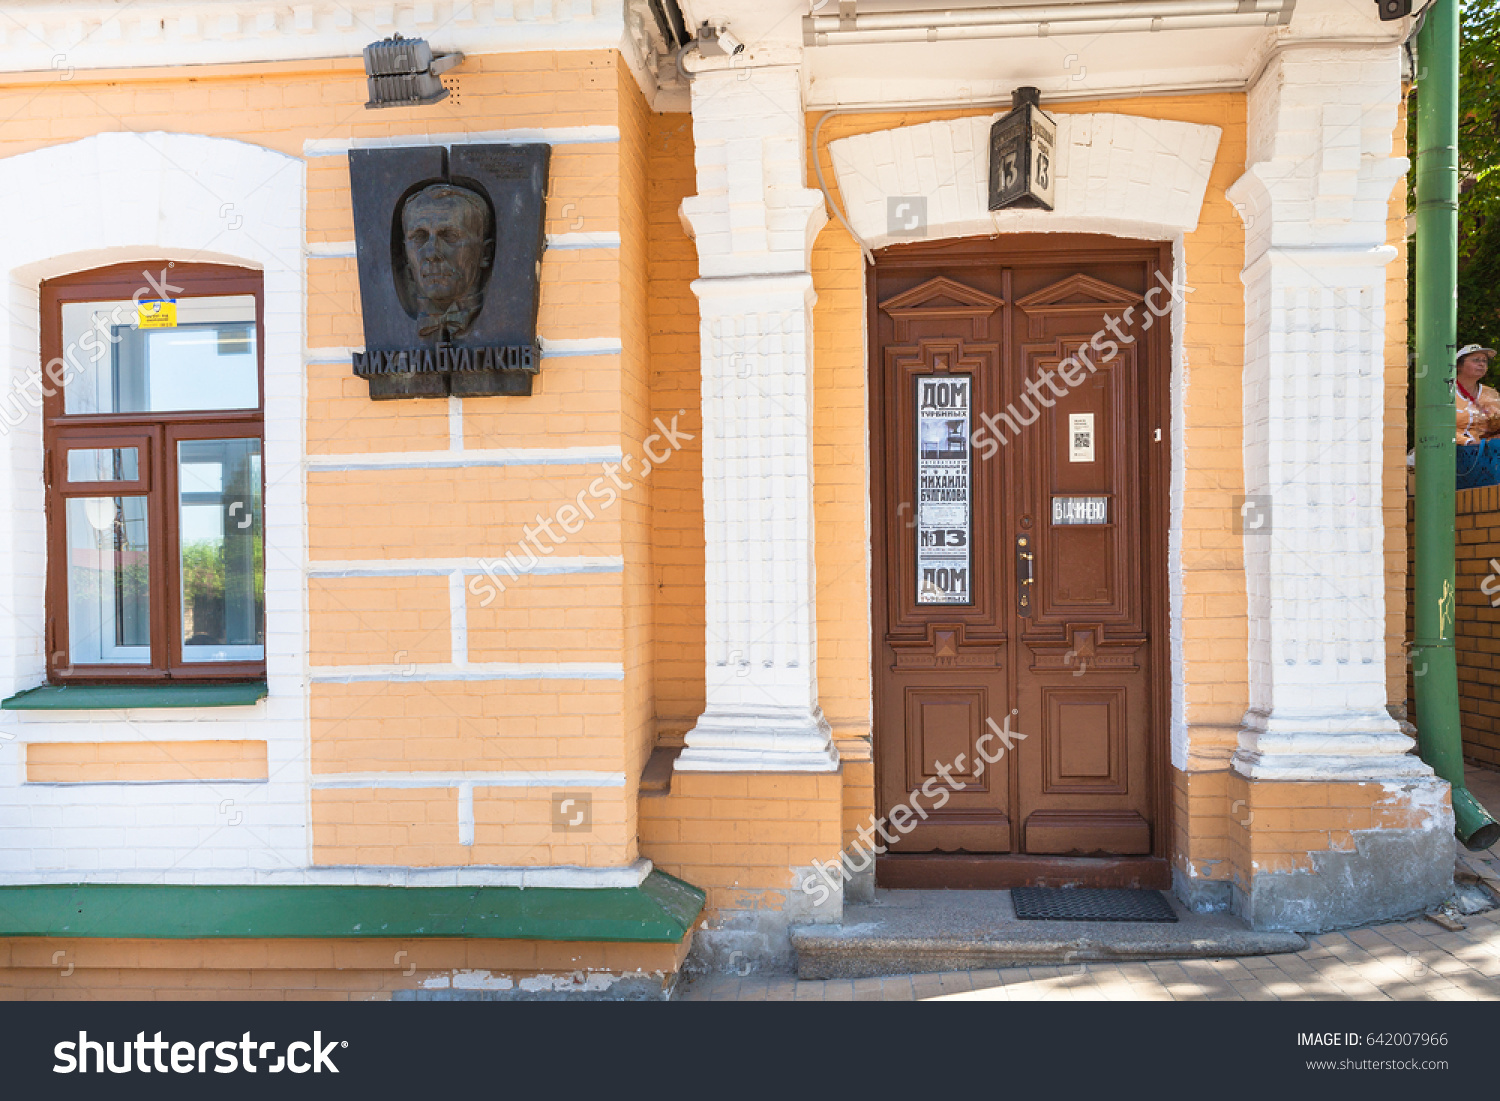 stock-photo-kiev-ukraine-may-entrance-in-literature-memorial-museum-to-mikhail-bulgakov-bulgakov-642007966